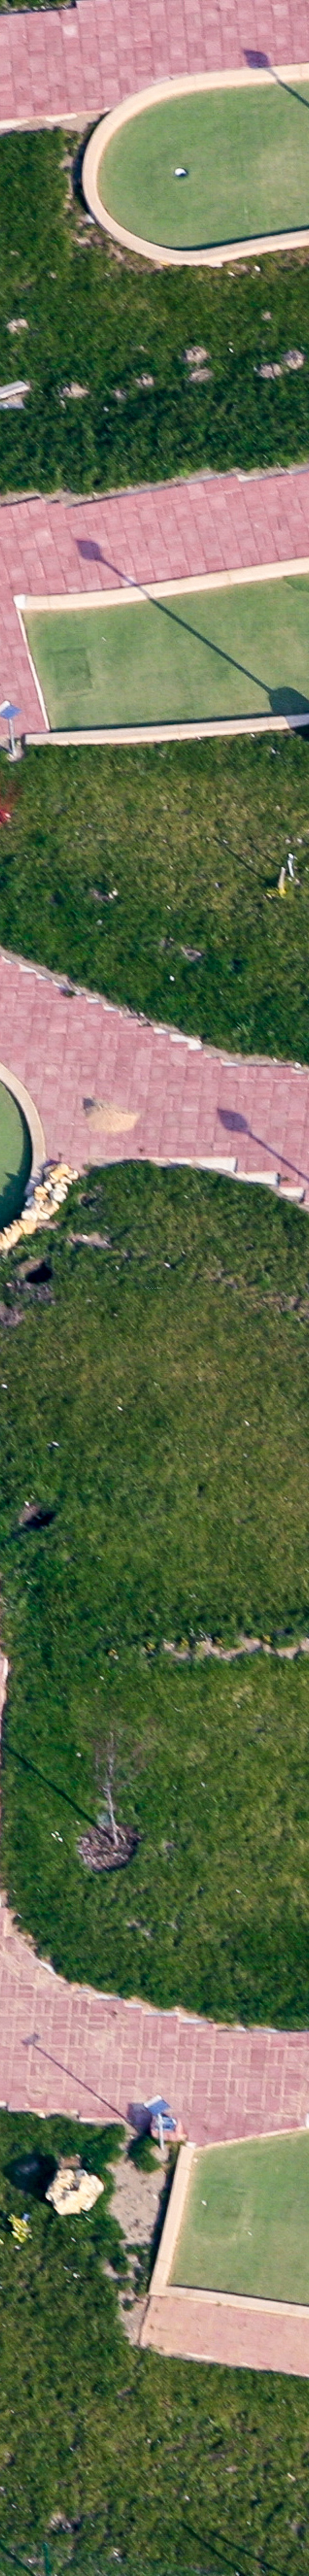 Aerial view of a minigolf course - Klaus Leidorf Aerial Photography